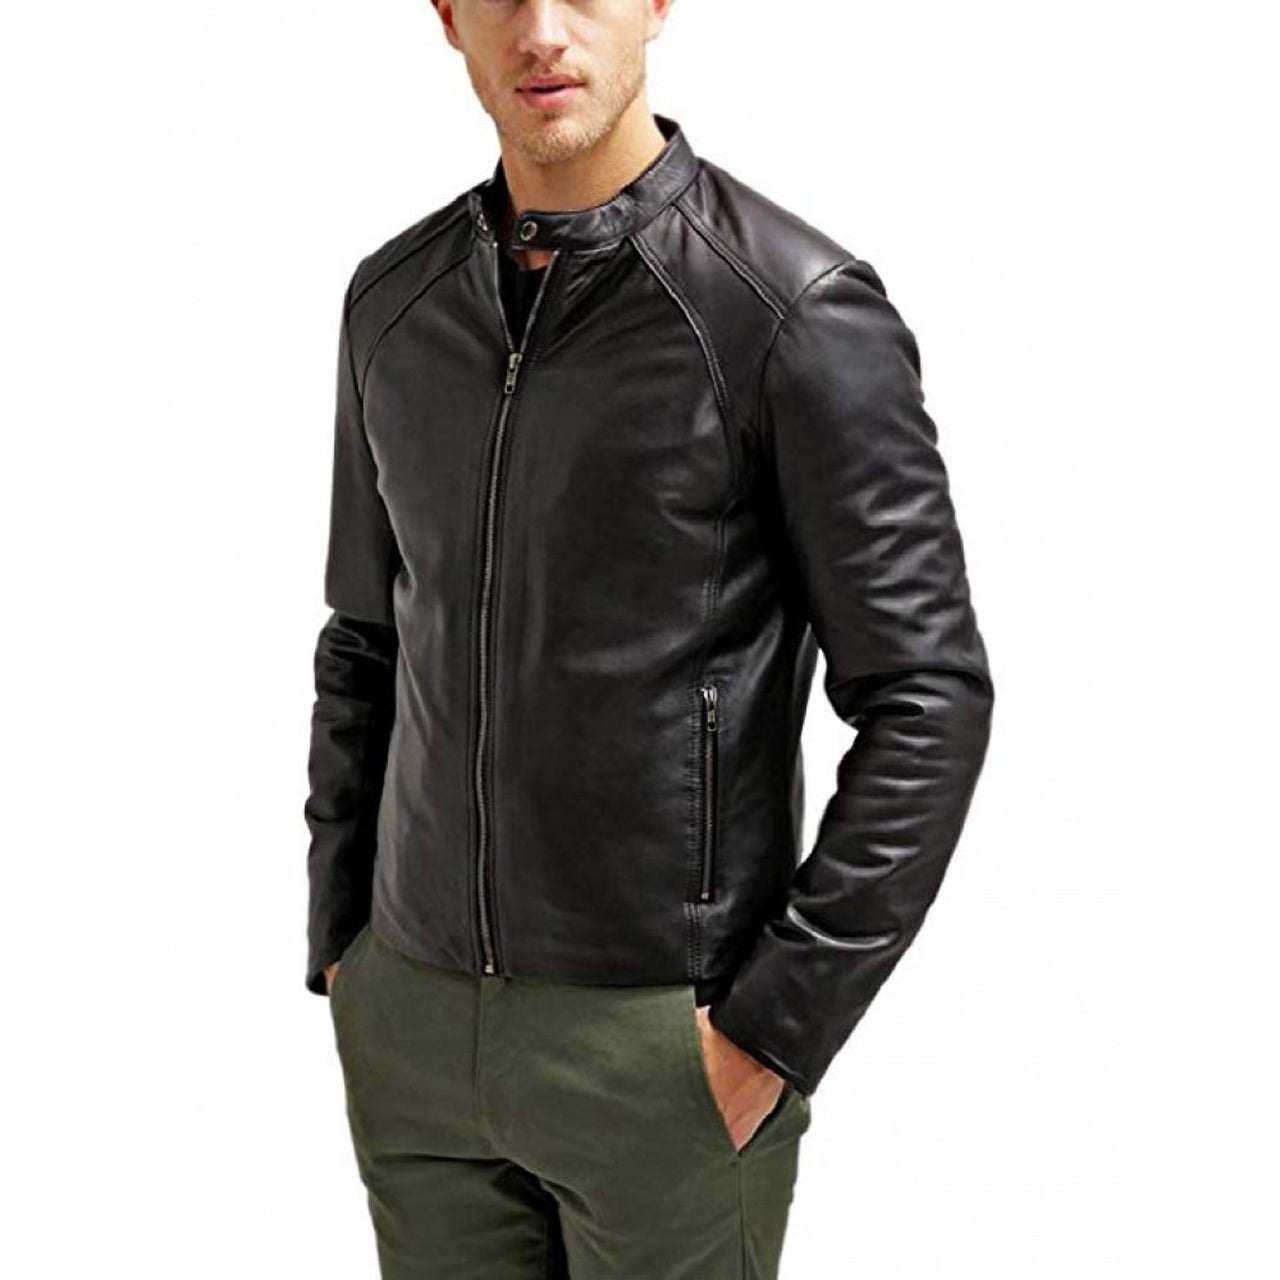 Jaxx Real Leather Biker Jacket In Black - Leather Jacket